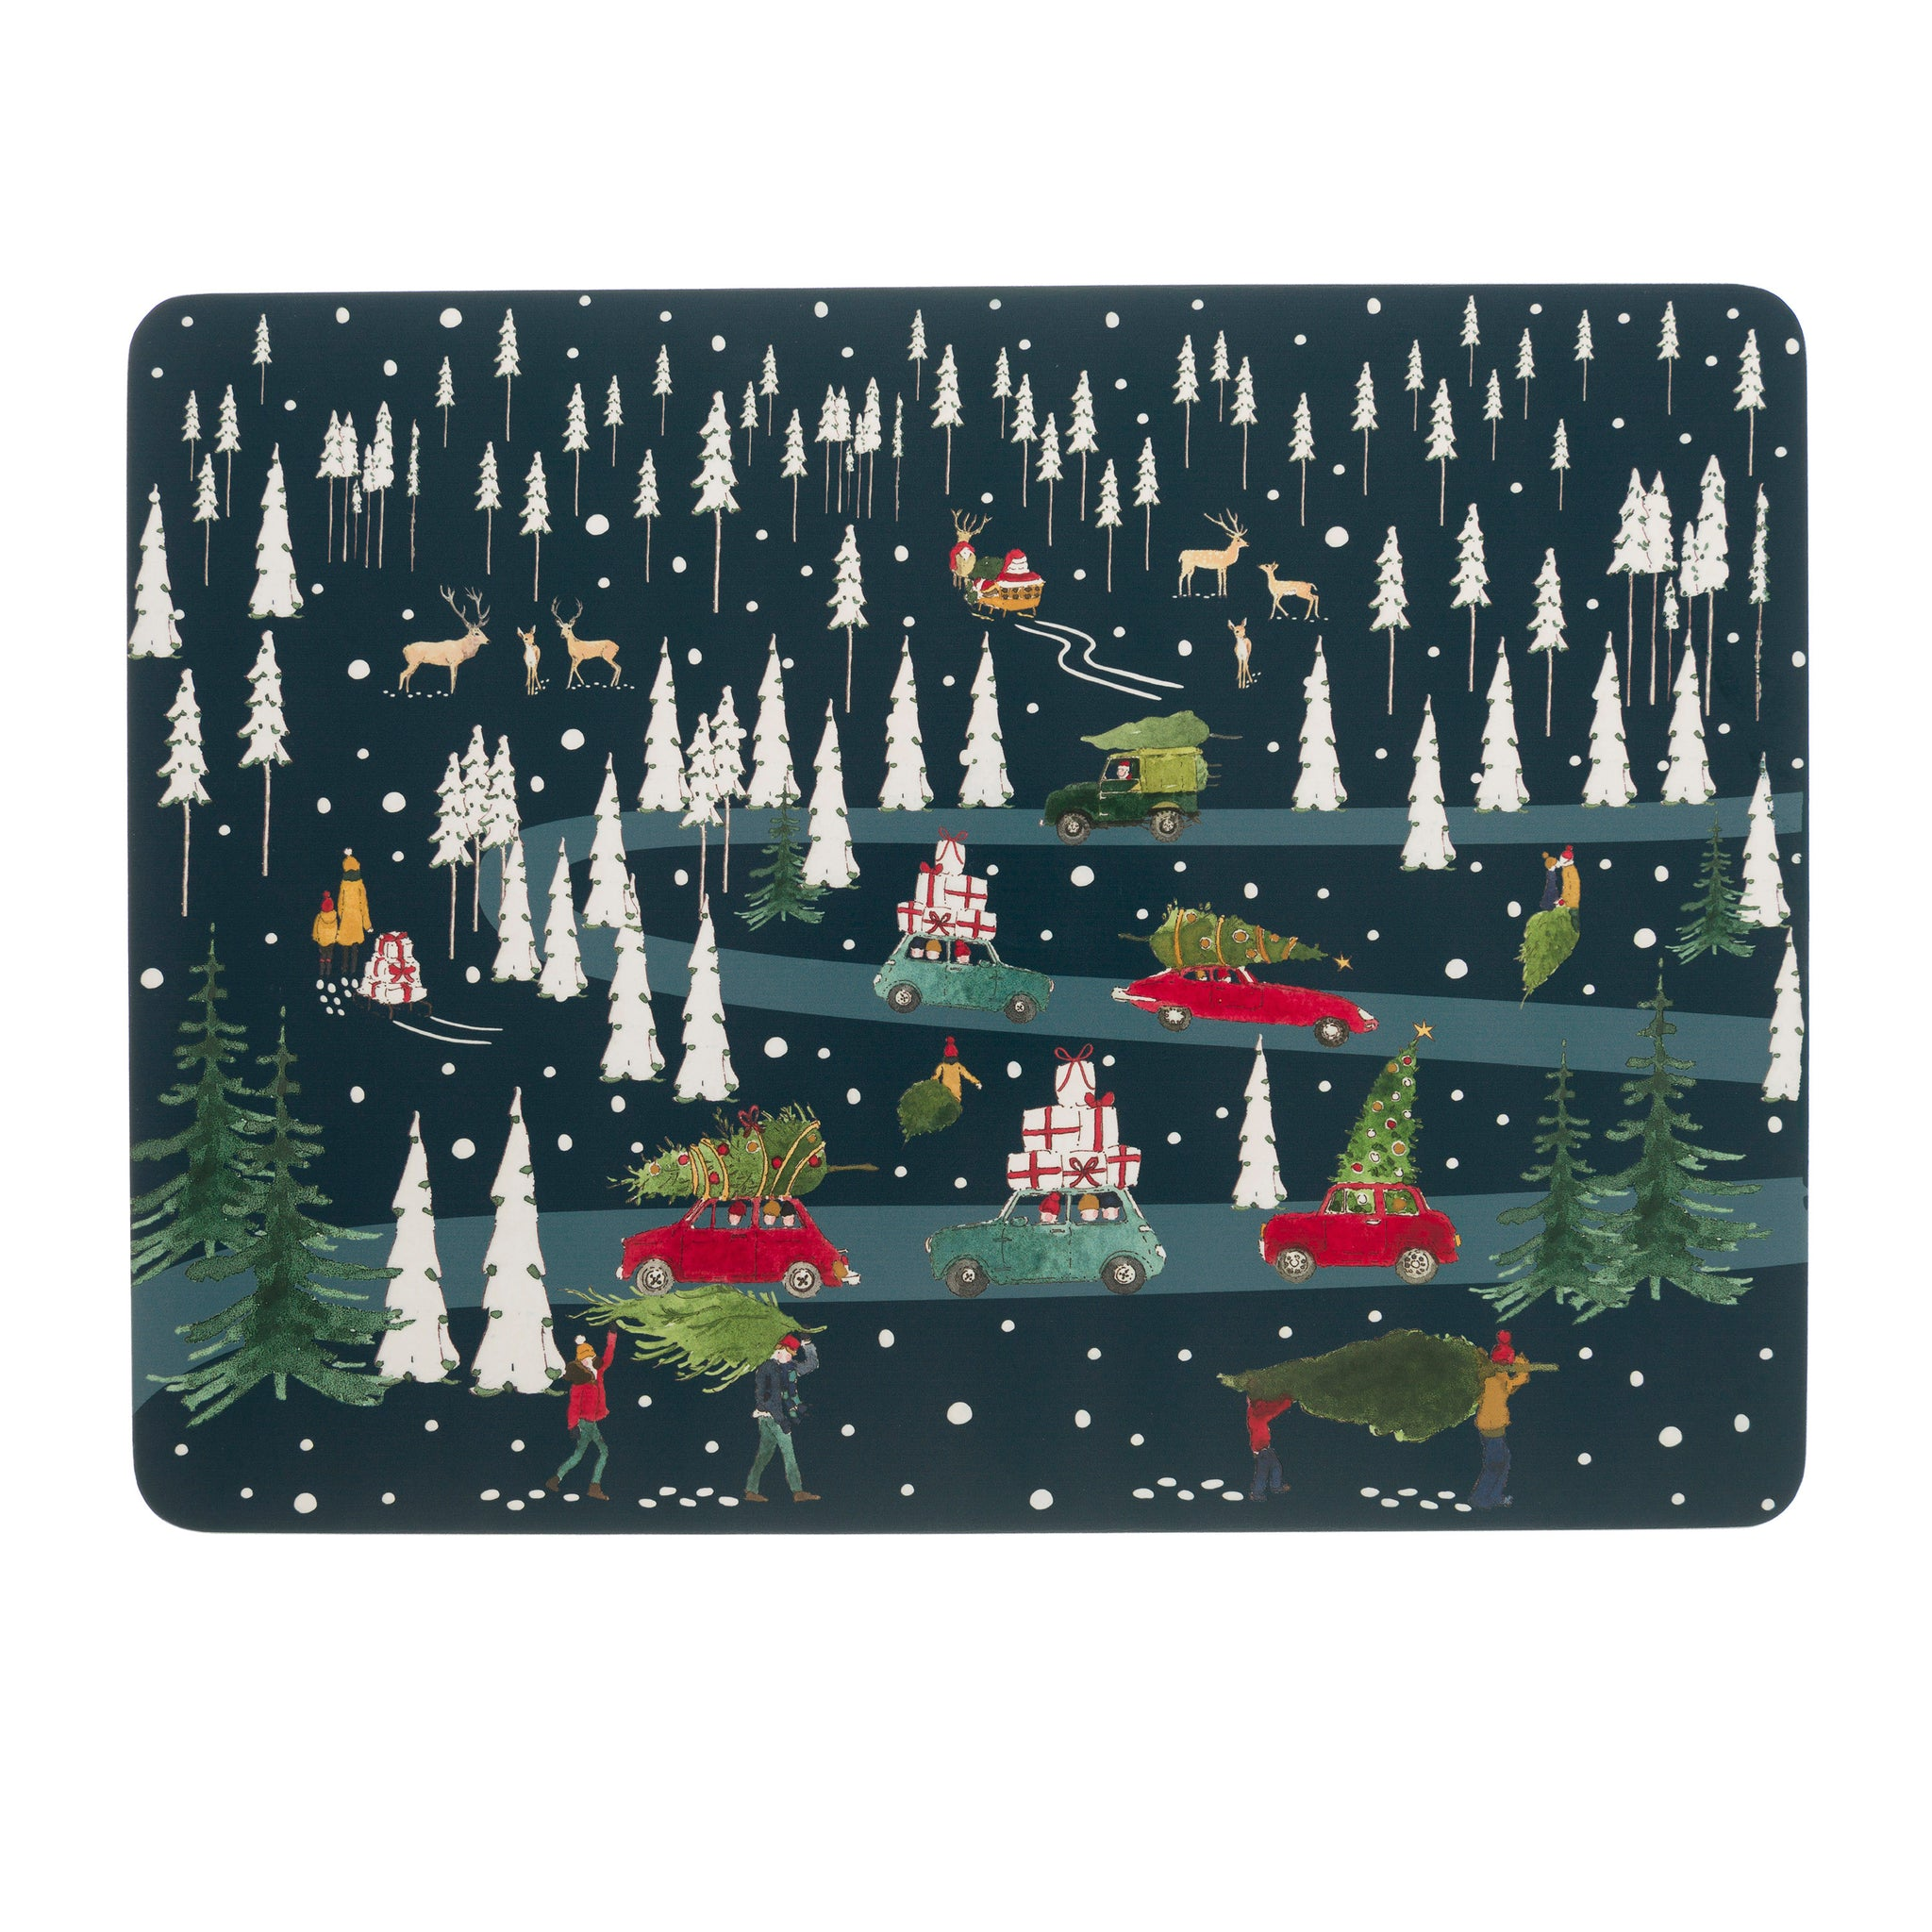 Home for Christmas Placemats (Set of 4)